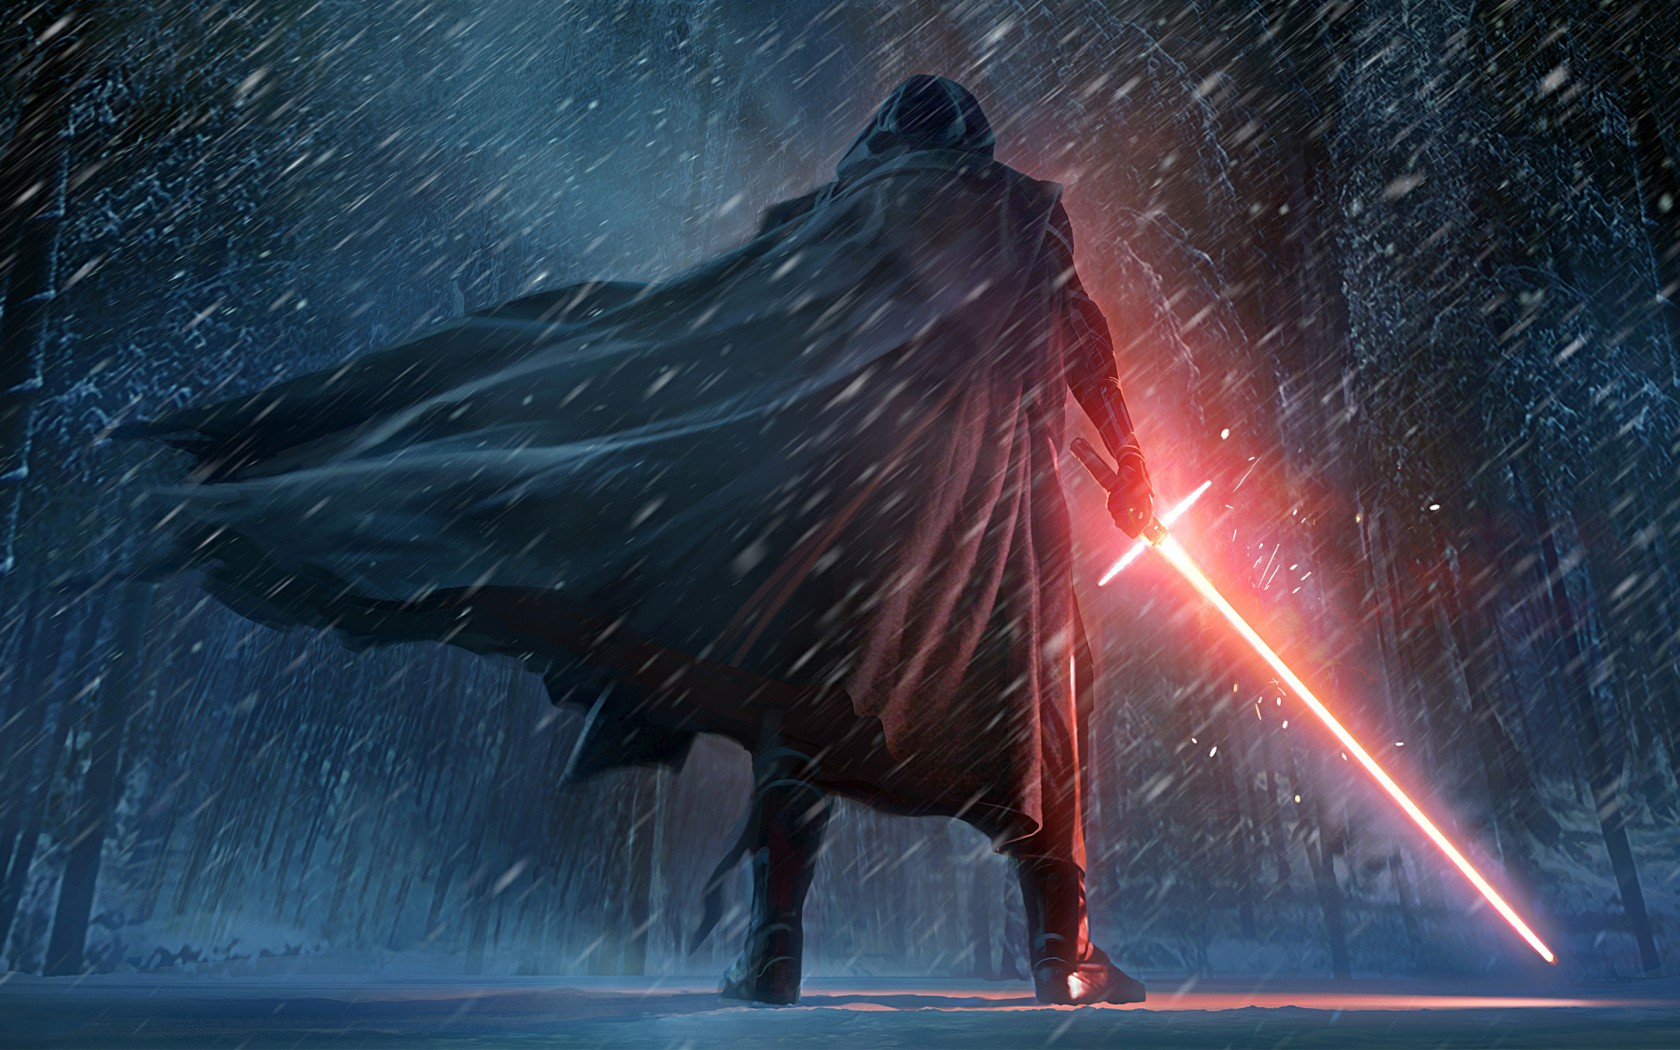 Cute Wallpapers For Iphone X Kylo Ren Star Wars The Force Awakens Artwork Wallpapers